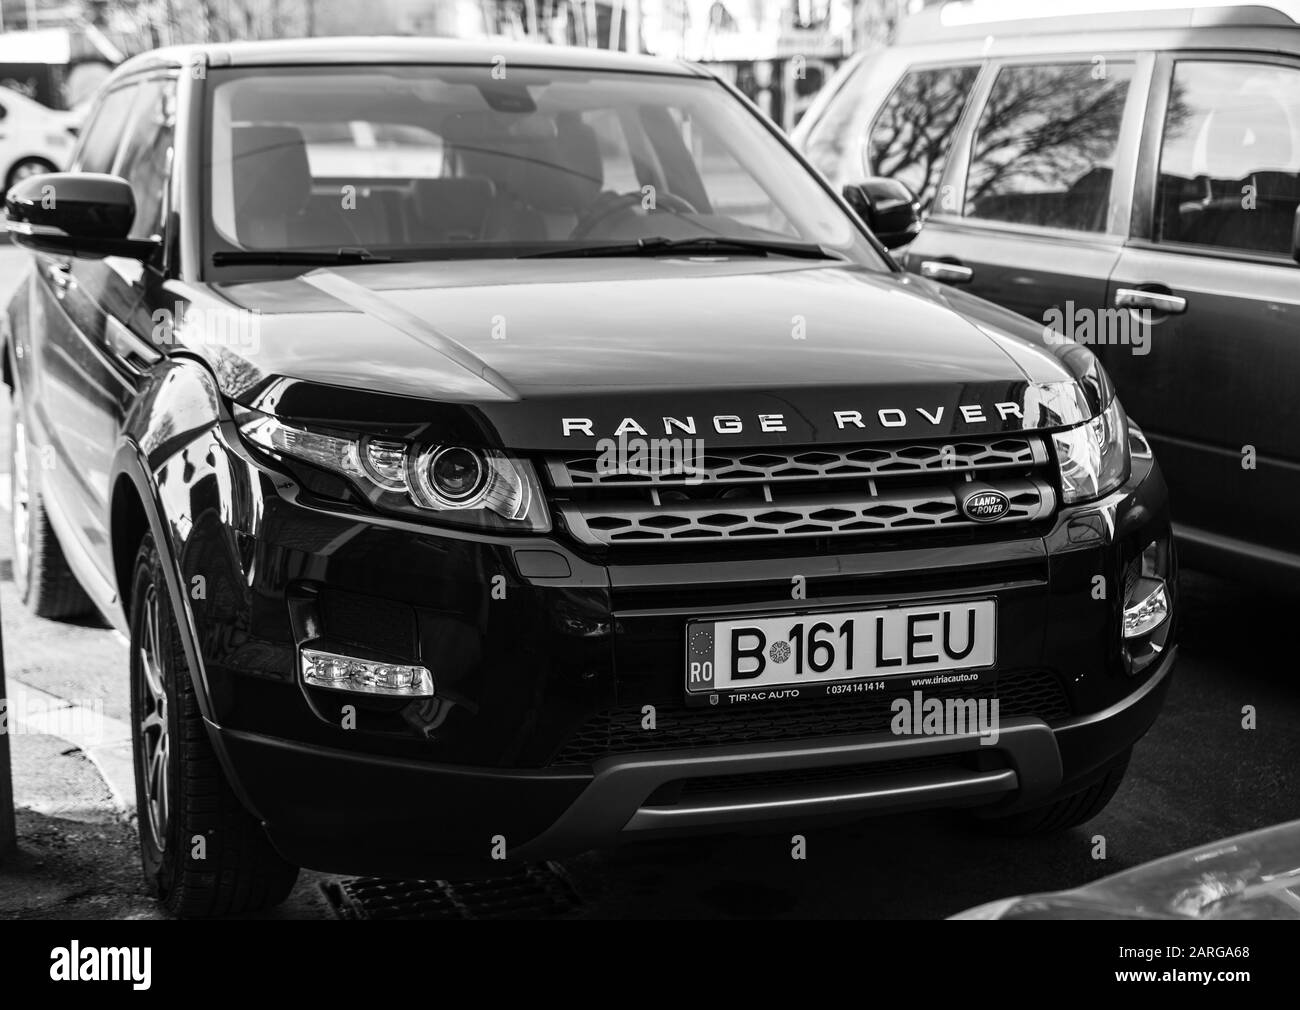 The New Range Rover Parked In Bucharest Romania 2020 Black And White Photo Stock Photo Alamy